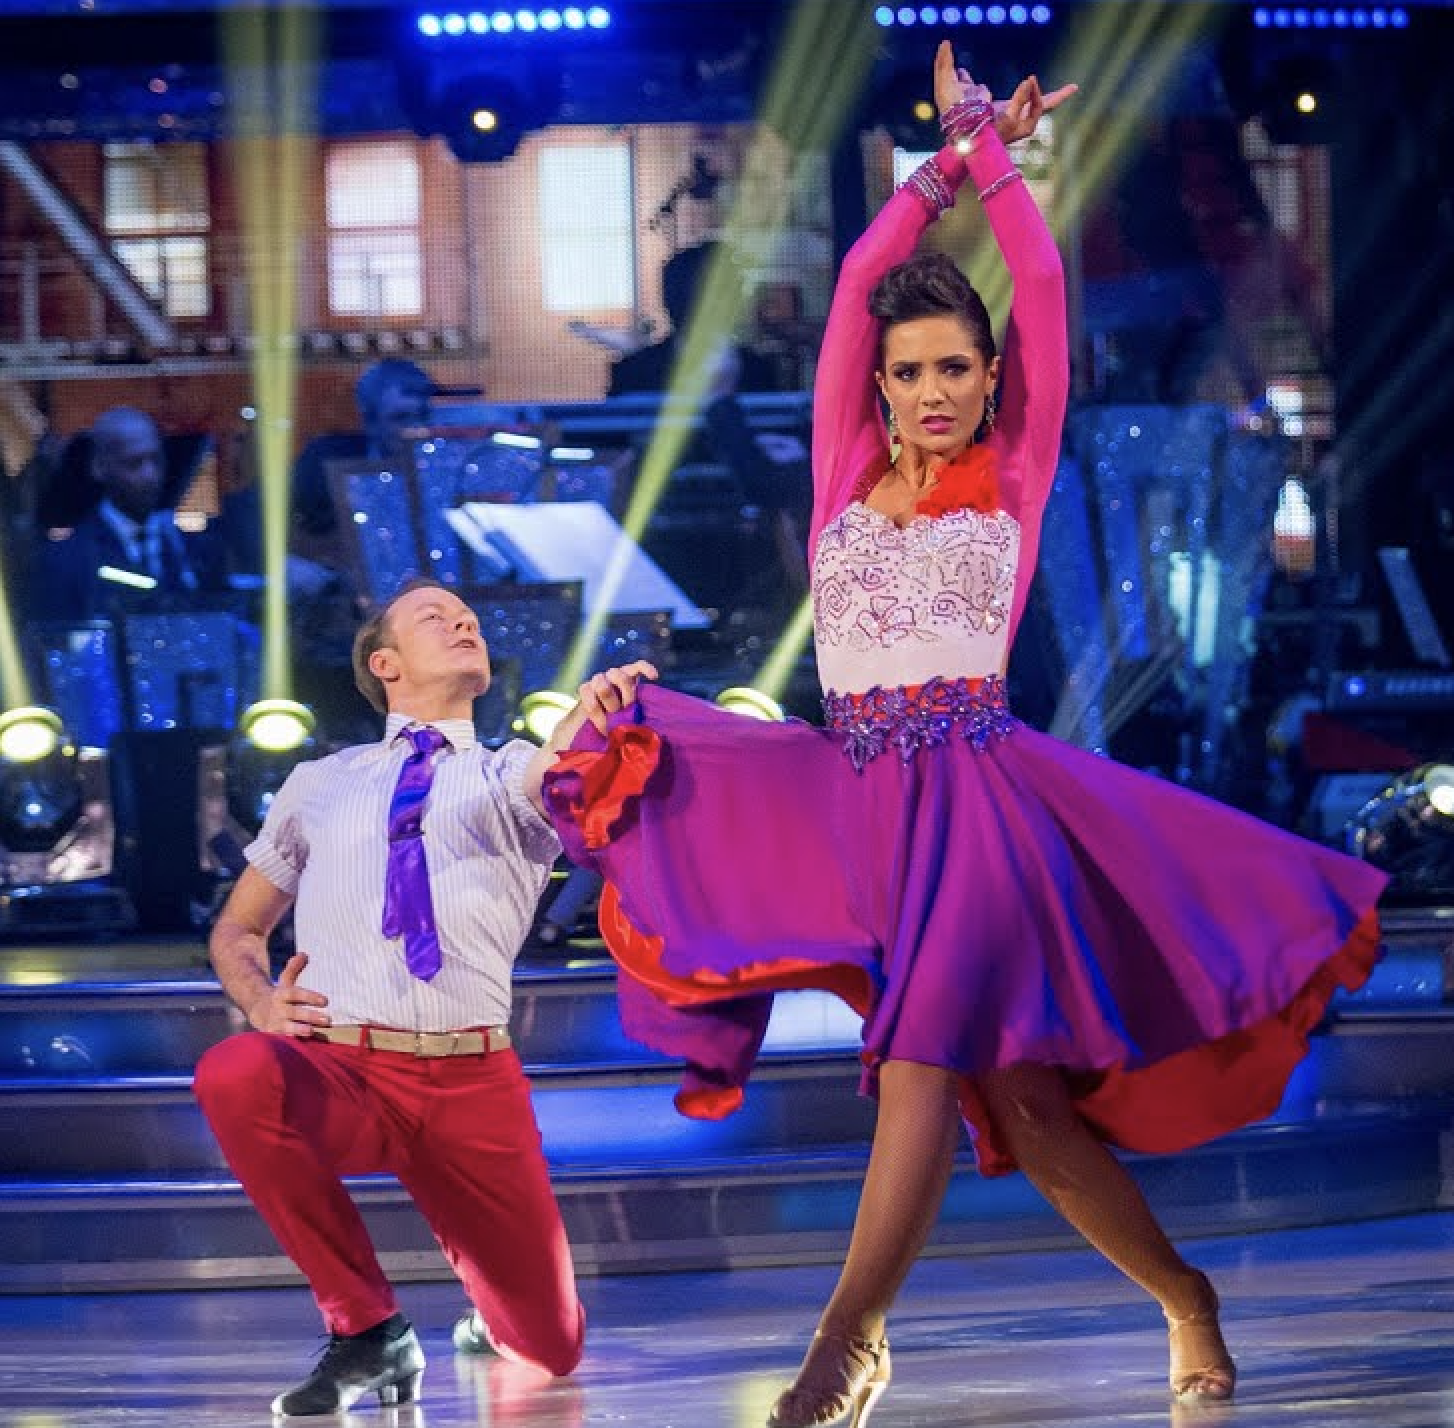 Frankie S CLub Juniors Taking The Dance Floor By Storm On Strictly Come Dancing